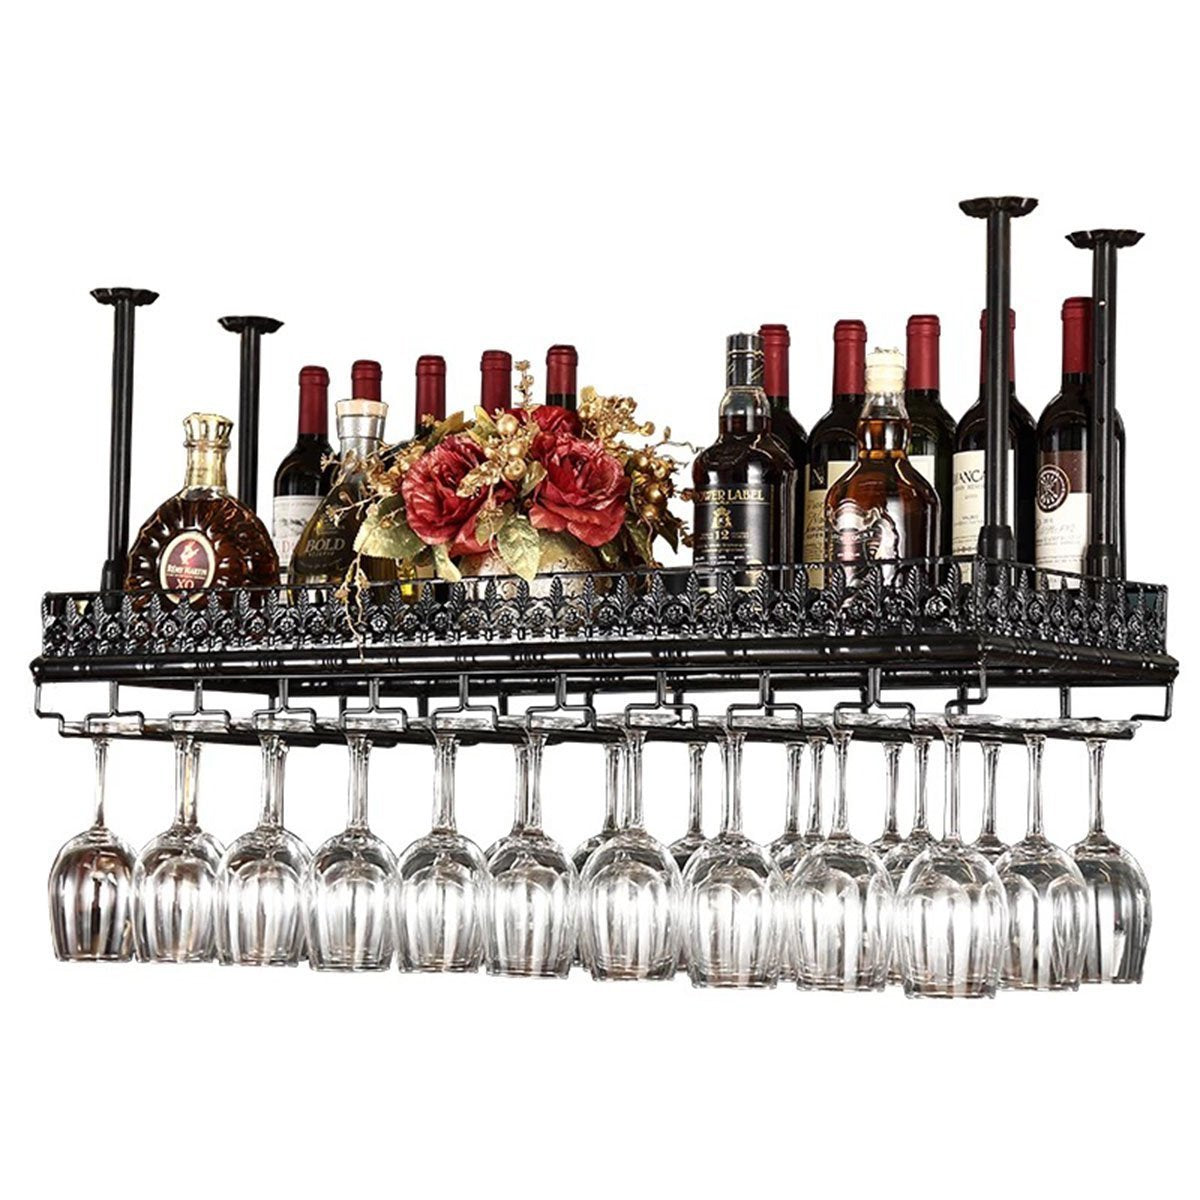 On amazon warm van industrial metal vintage bar wall mounted wine racks wine glass hanging rack under cabinet cup shelf restaurant cafe kitchen organization and storage shelveblack 47 2l